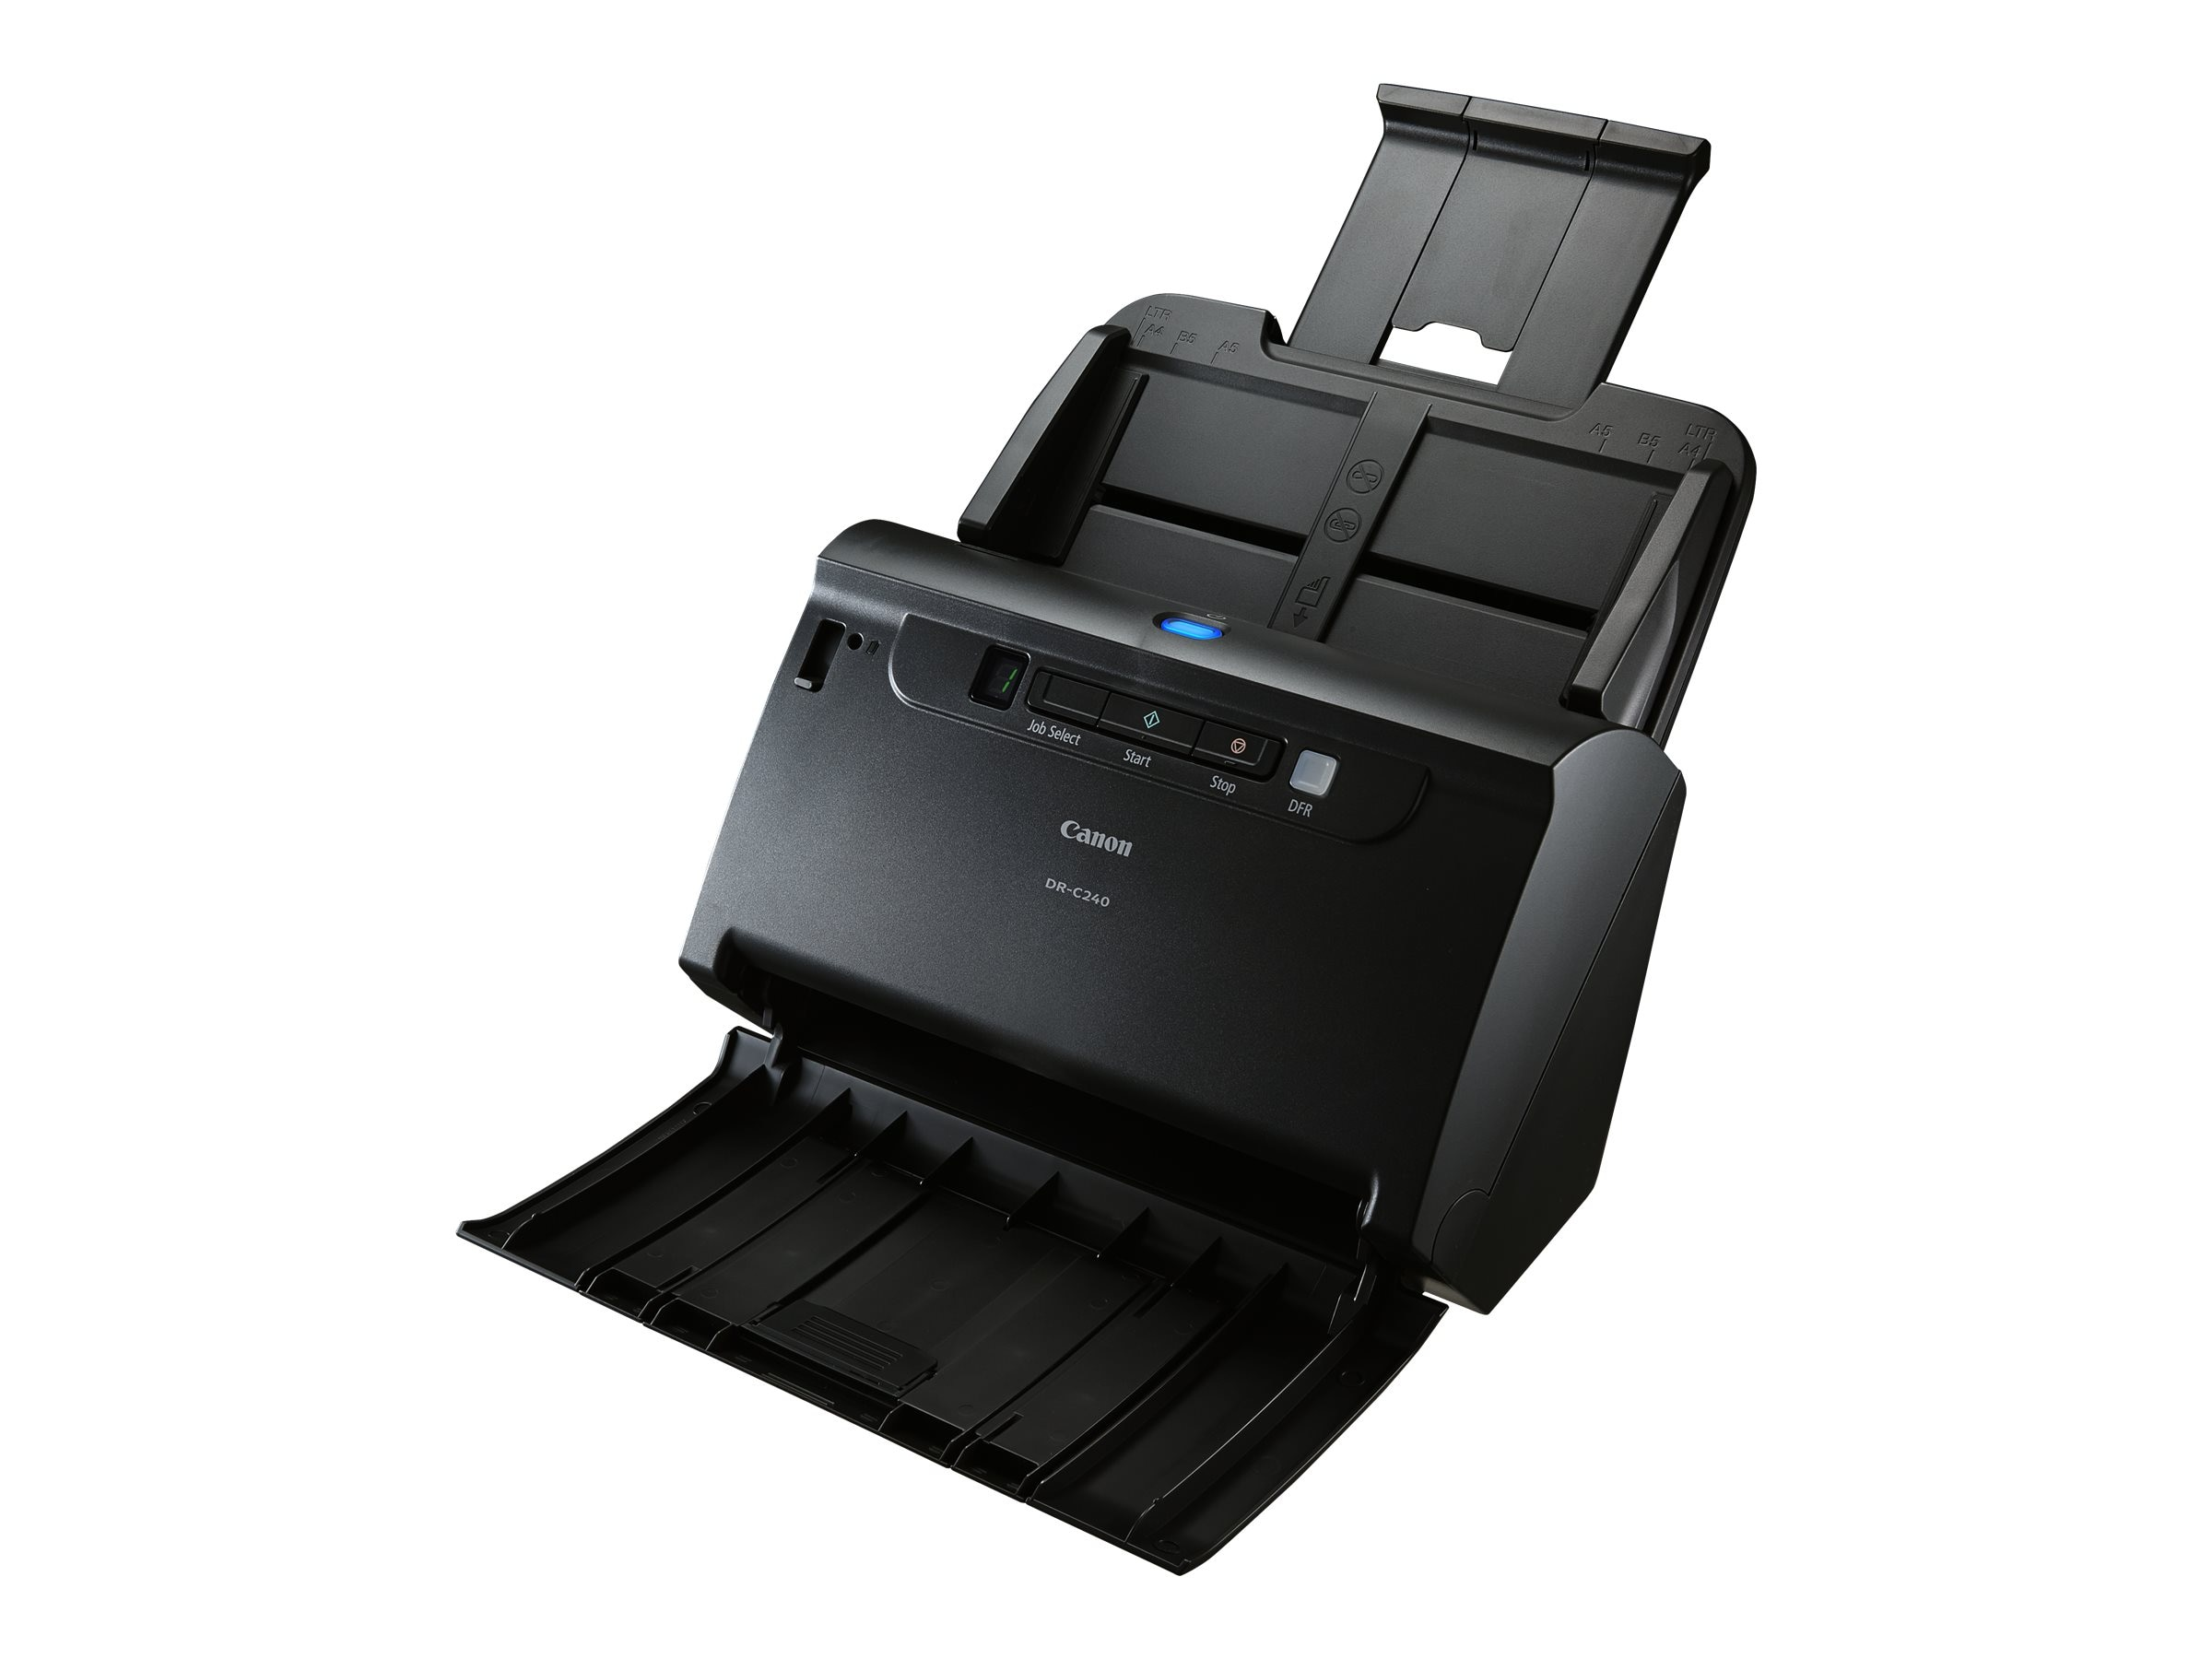 Open Box Canon imageFORMULA DR-C240 Document Management Scanner, 0651C002, 30780589, Scanners